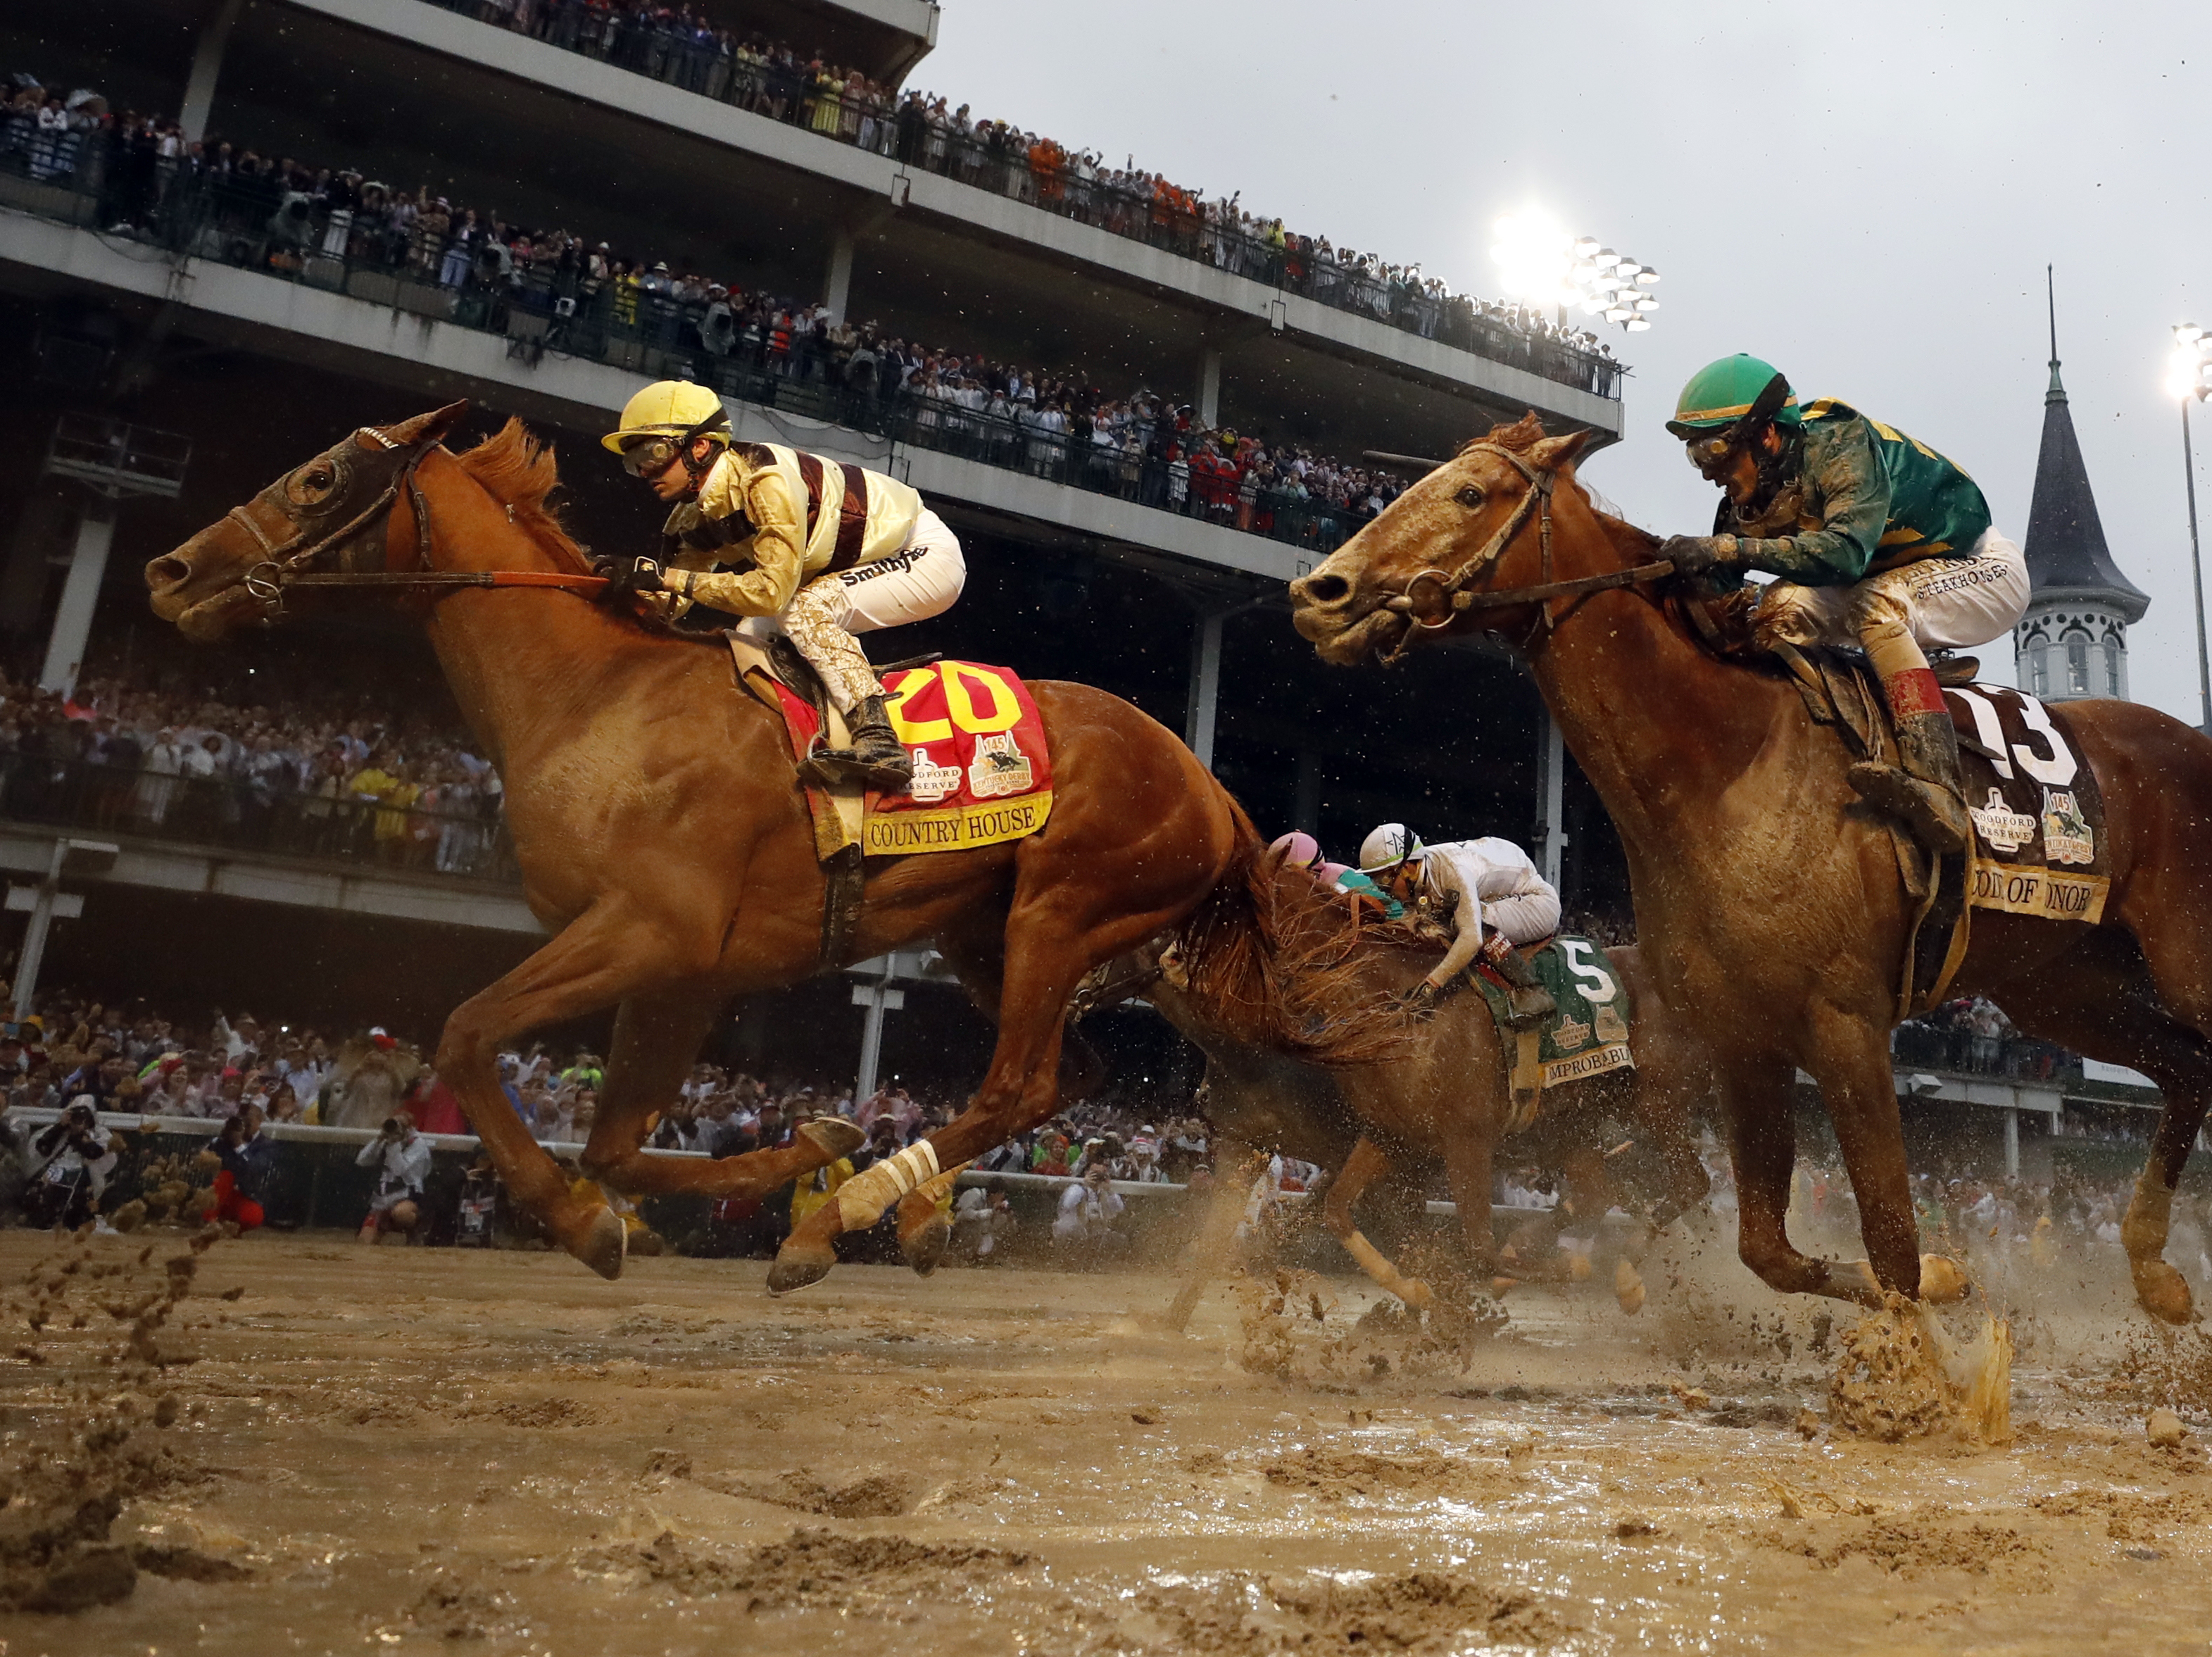 Country House, A 65-1 Long Shot, Wins Kentucky Derby After Historic Disqualification